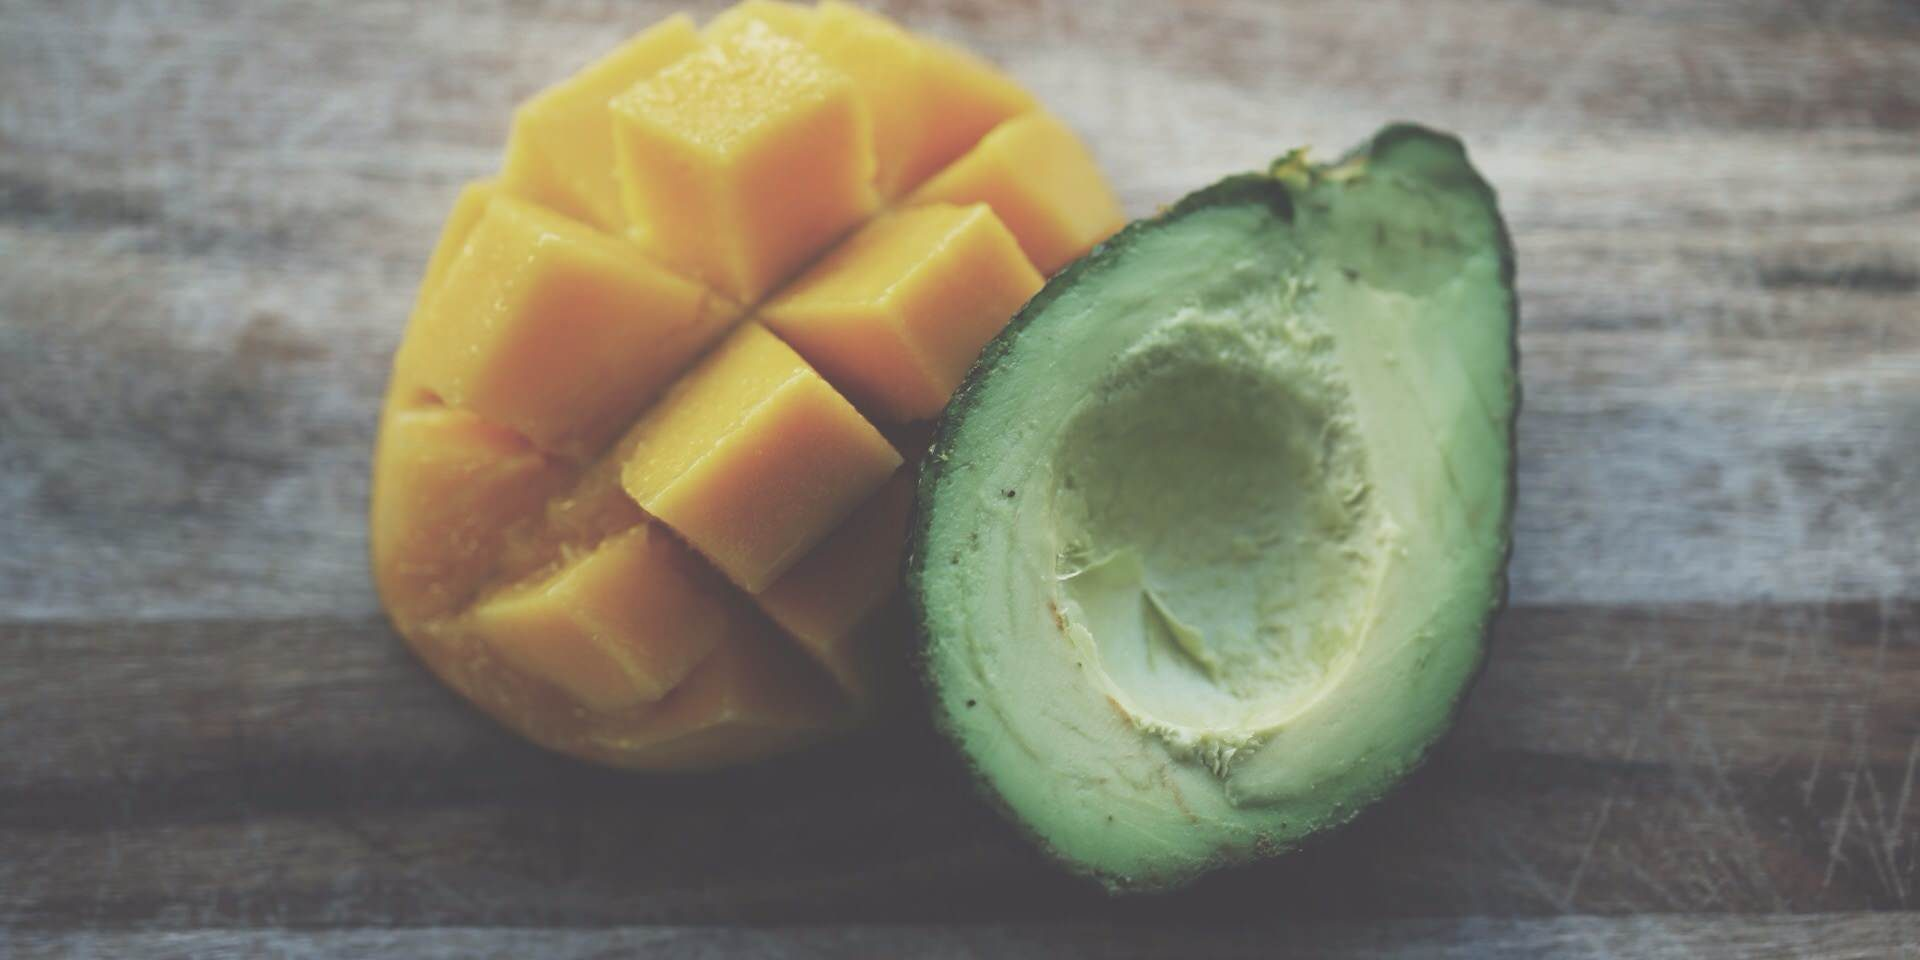 Mango and avocado on wooden table